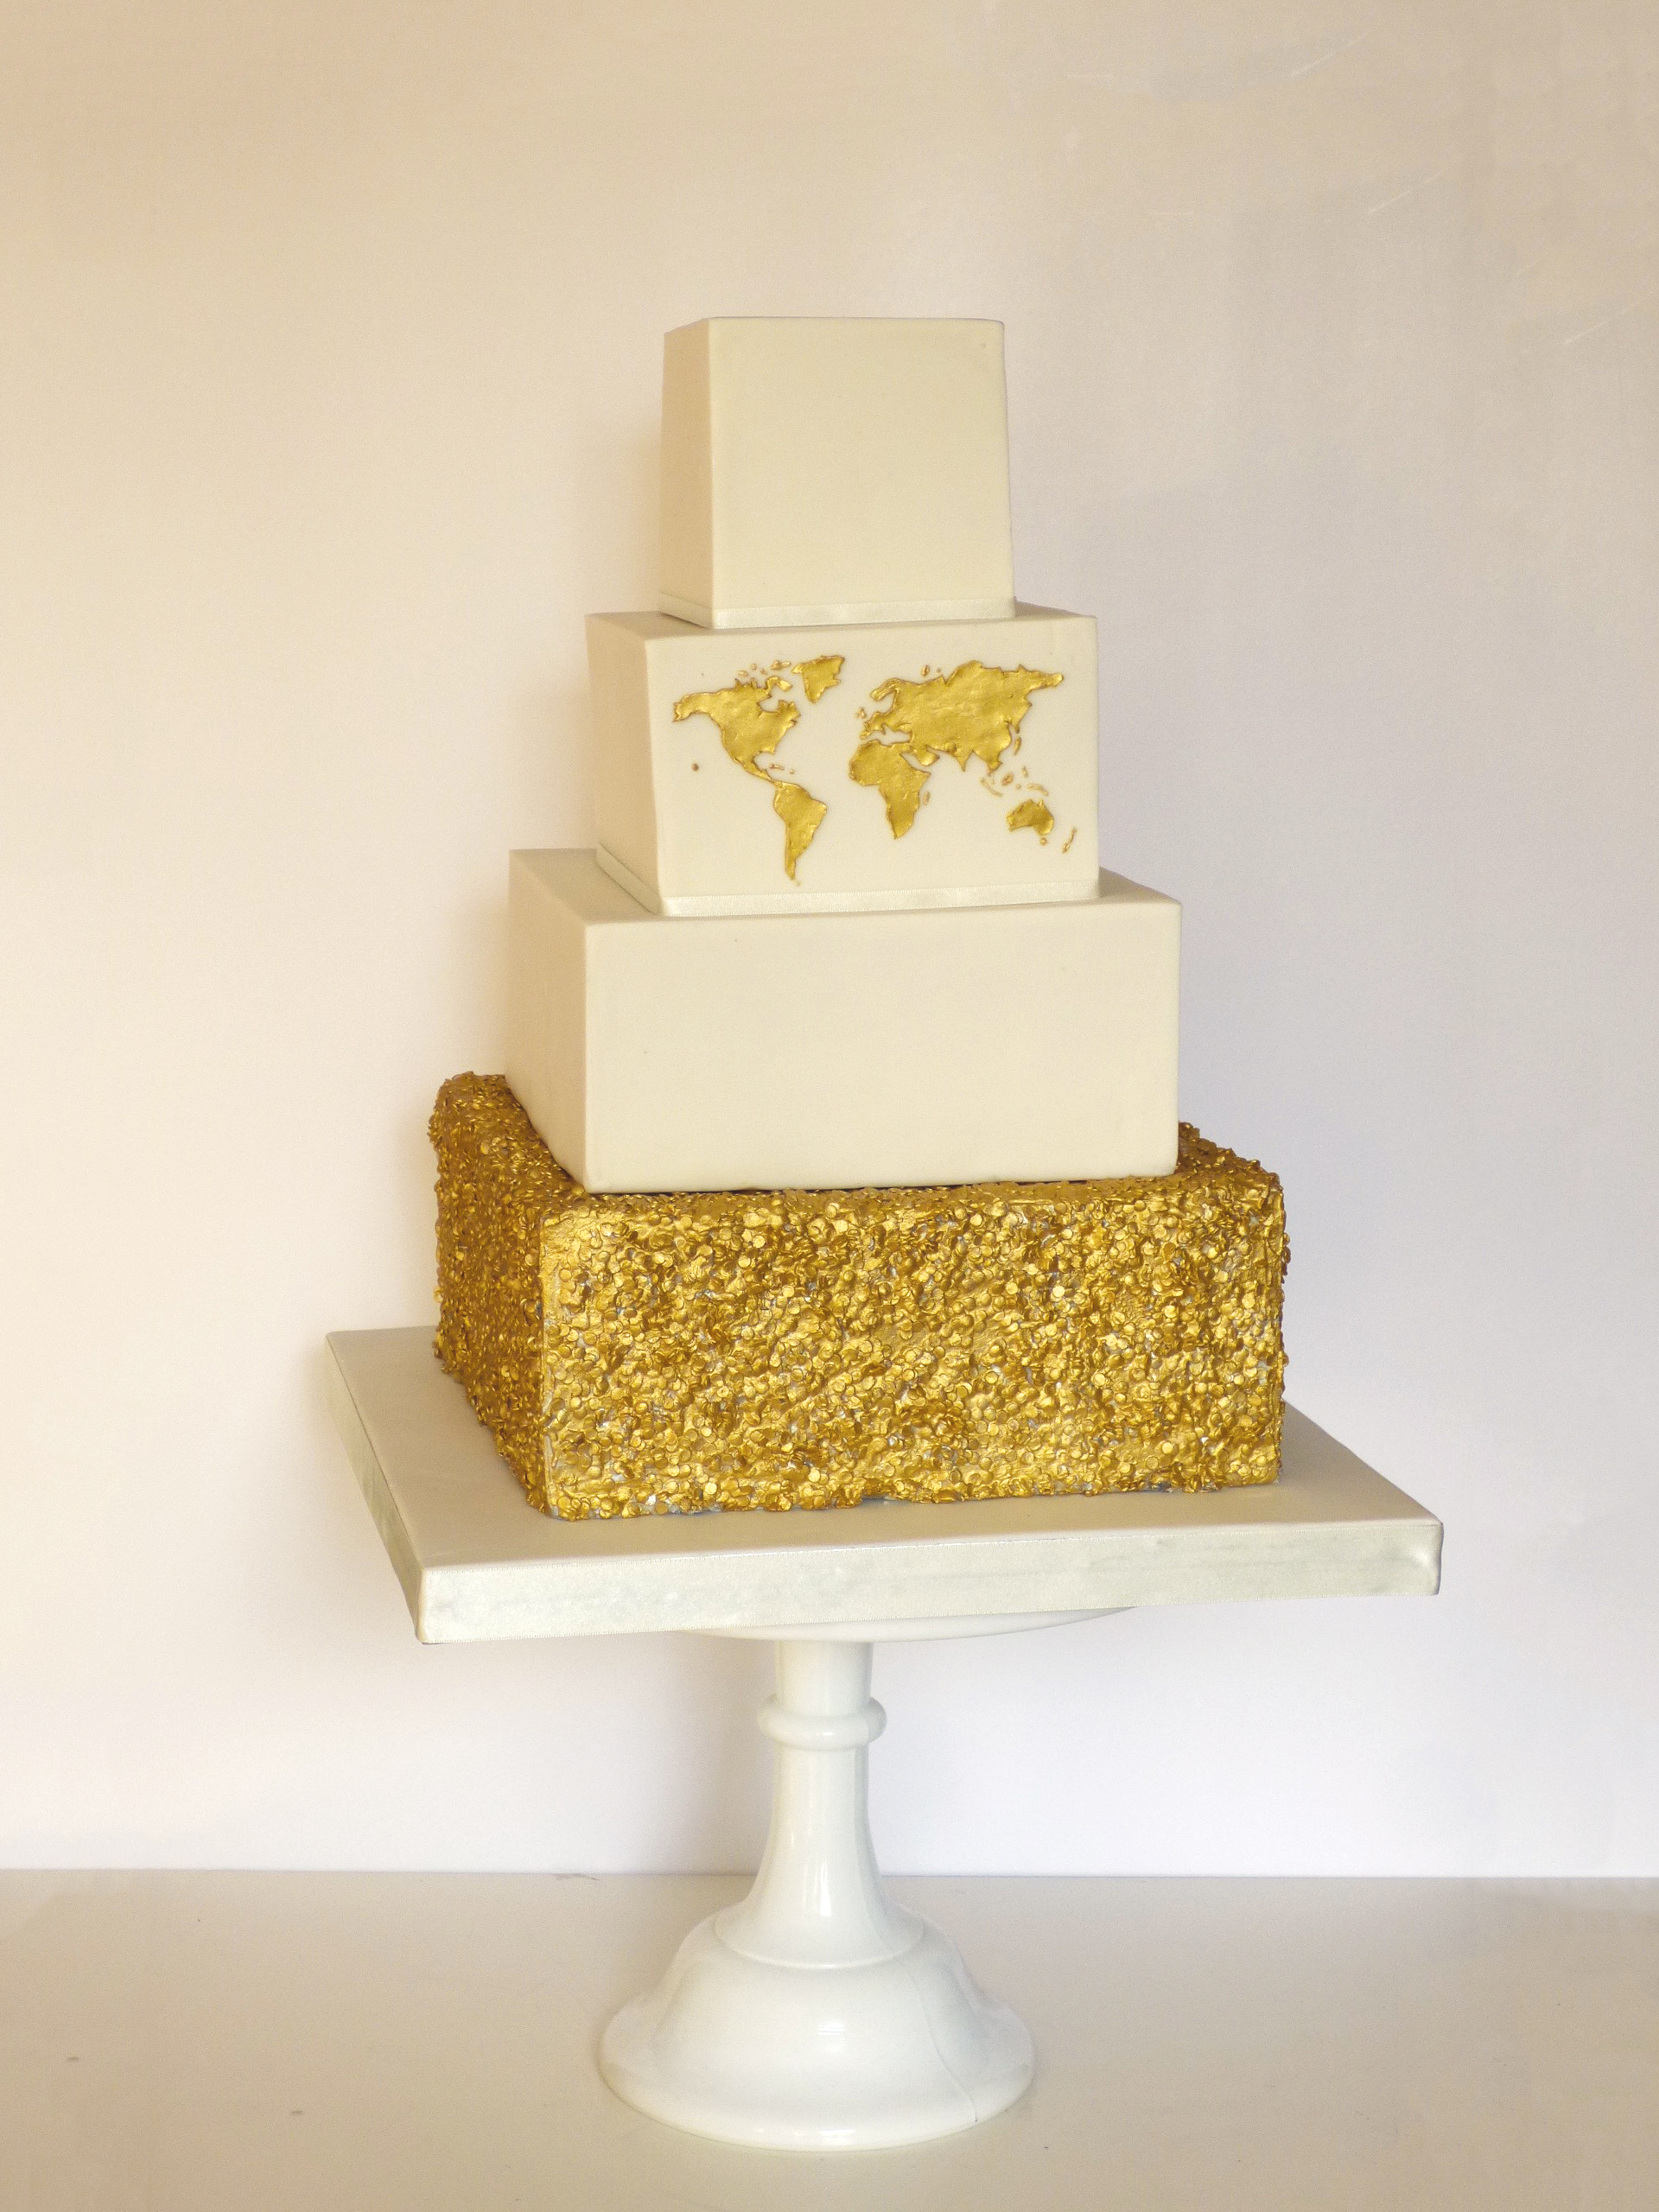 Square cake with gold sequins and gold world map for a travel themed wedding in Central London.